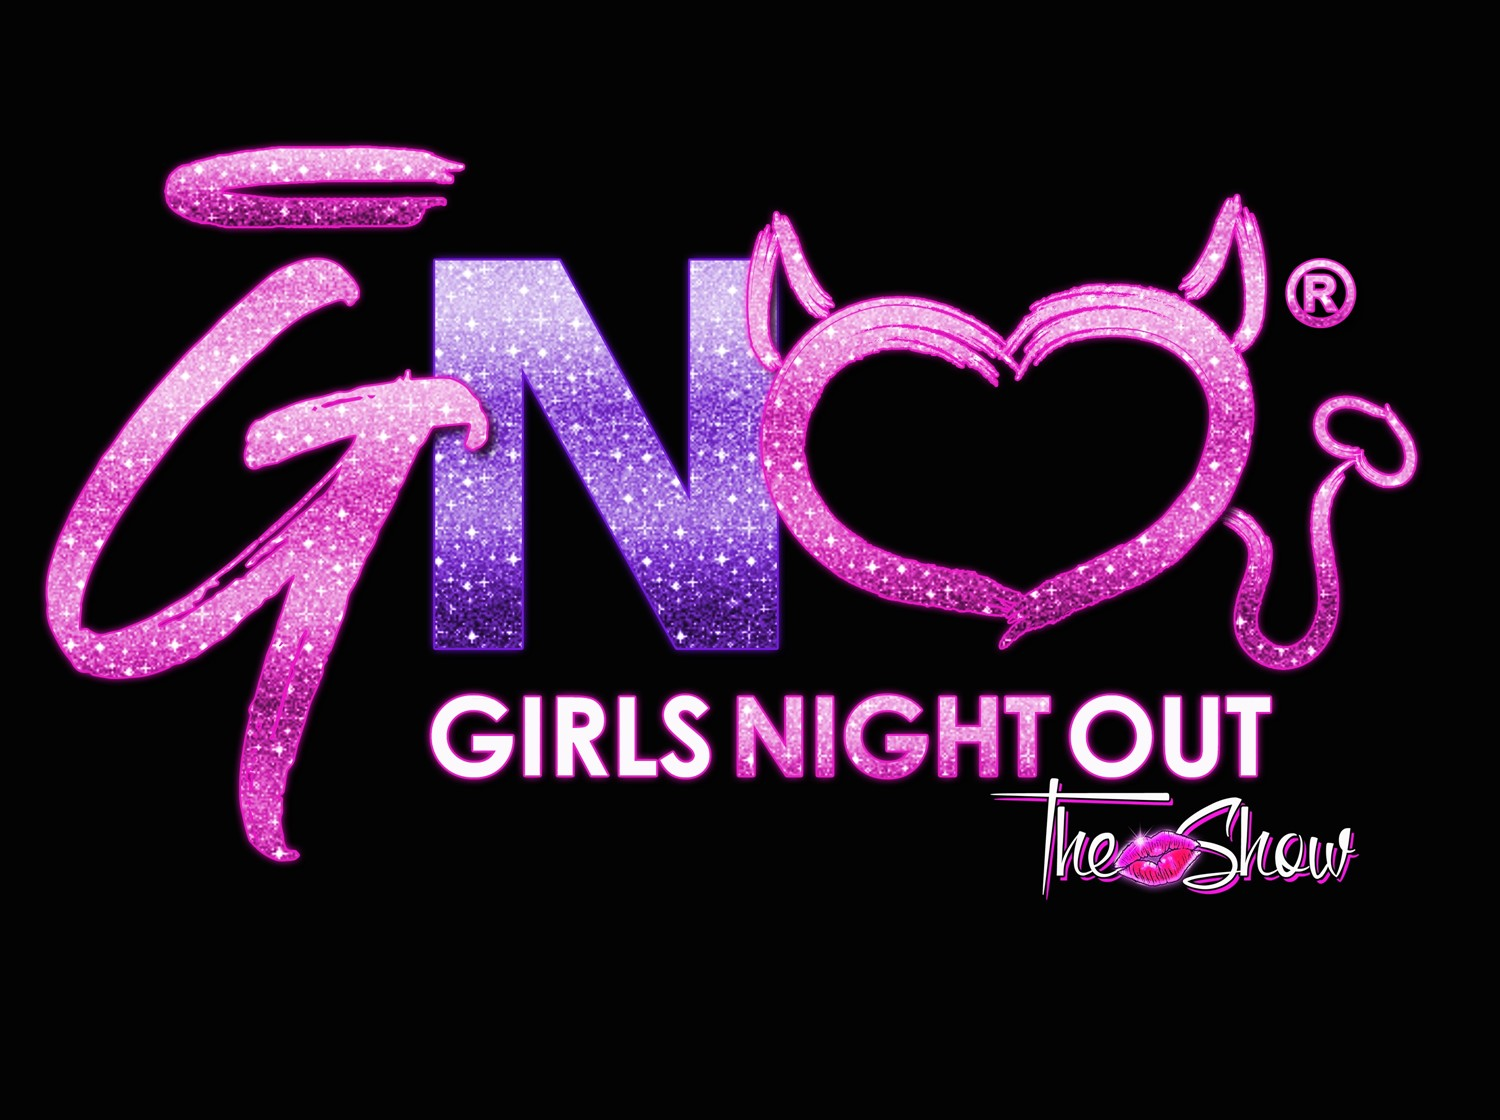 Munchie's Pizza Barcade (21+) Fort Lauderdale, FL on jun. 18, 20:00@Munchie's Pizza Barcade - Buy tickets and Get information on Girls Night Out the Show tickets.girlsnightouttheshow.com